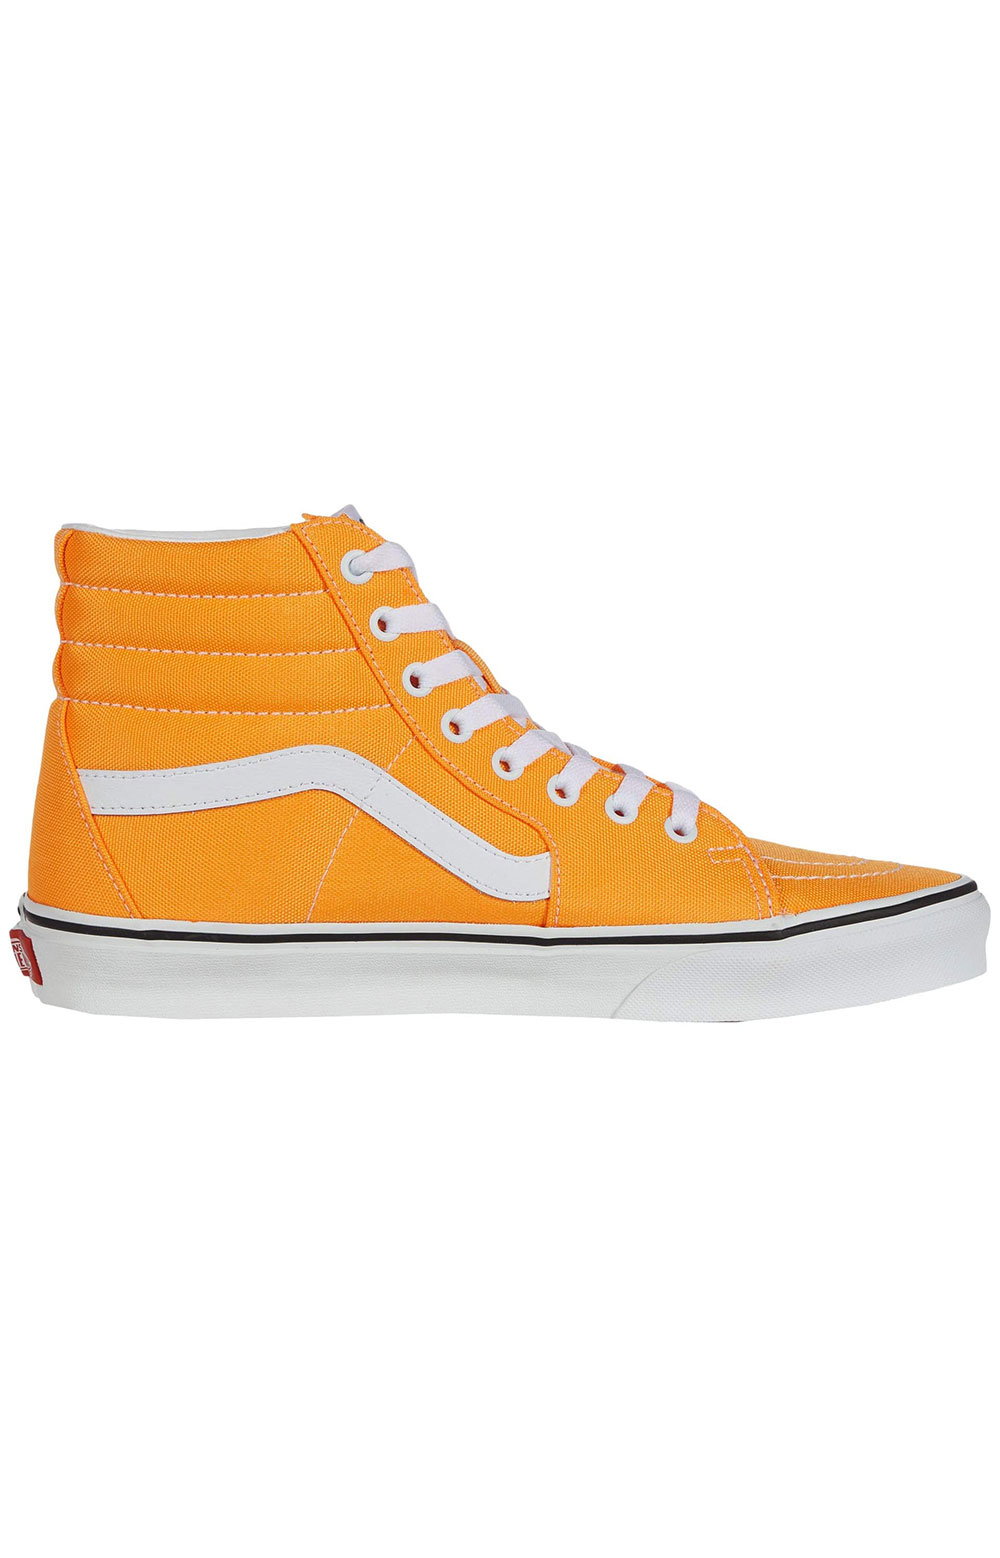 (U3CWT4) Neon Sk8-Hi Shoes - Blazing Orange